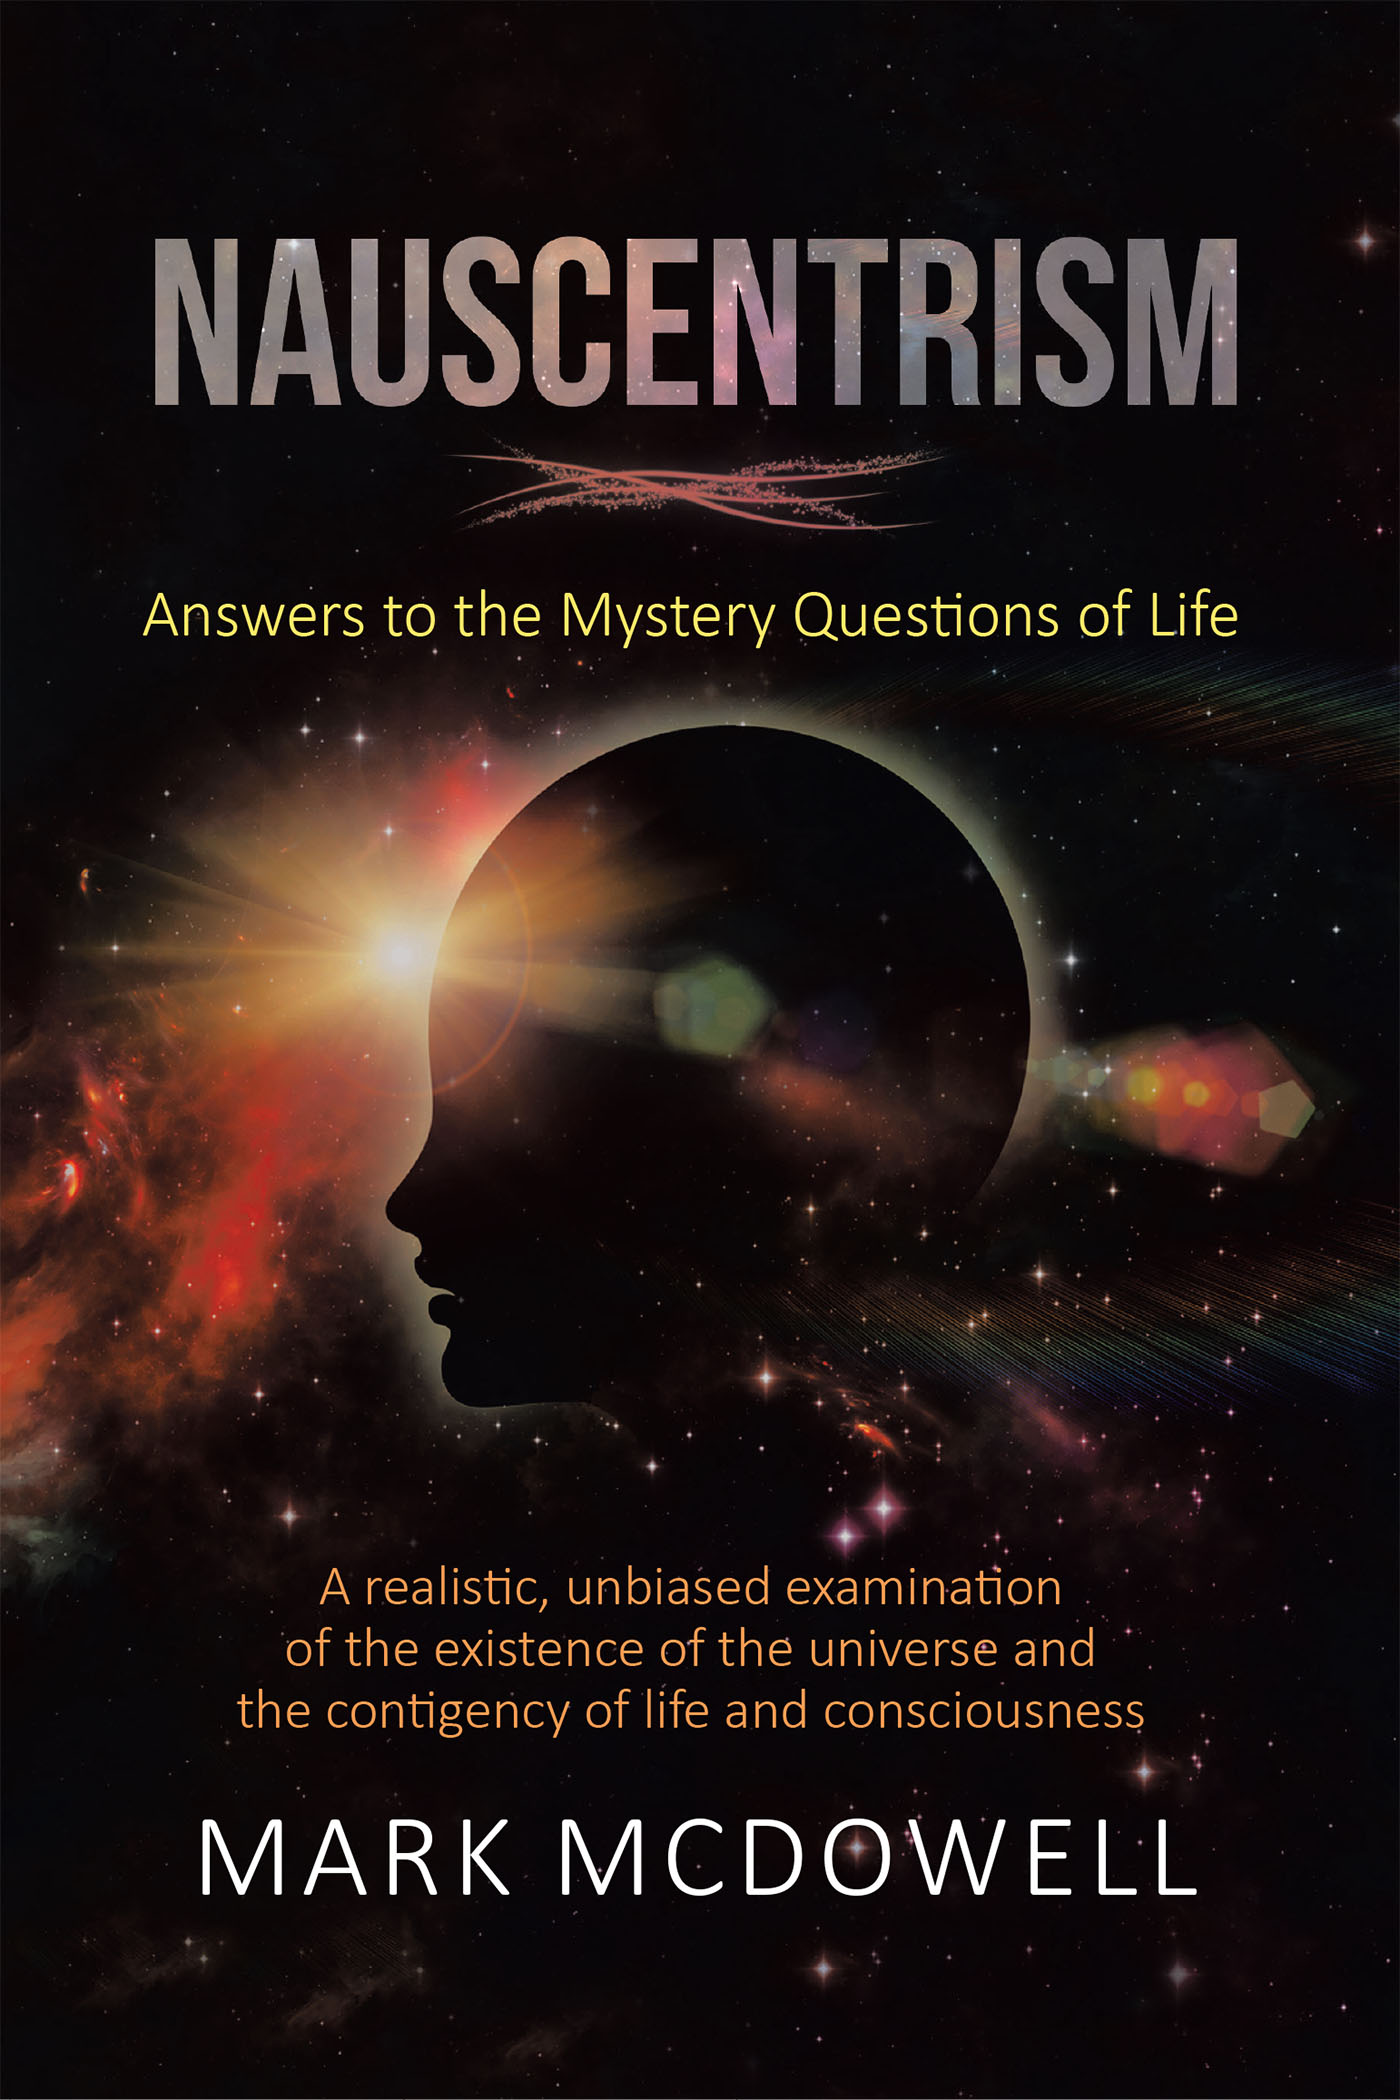 mark mcdowell s new book nauscentrism answers to the mystery